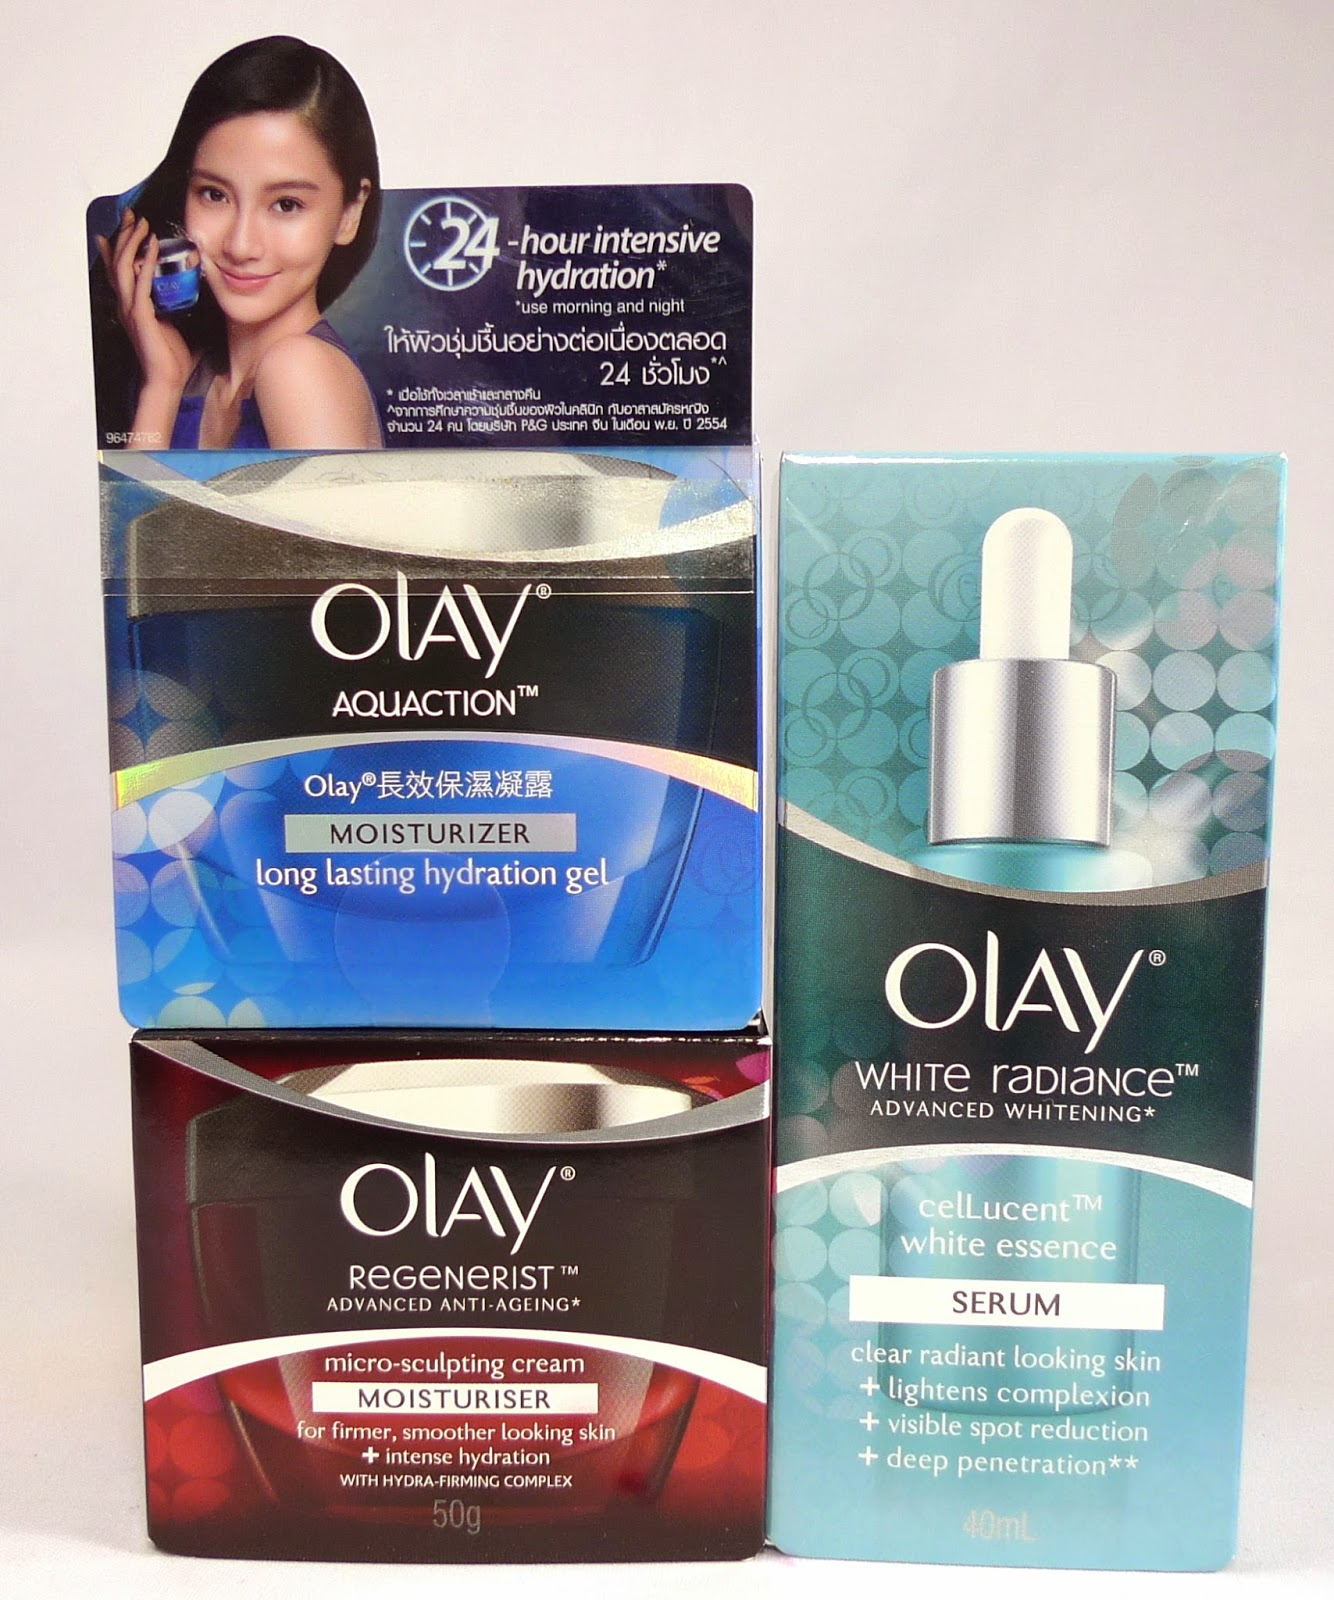 Summer Skin Care: Quick Olay Summer Skin Care Giveaway!